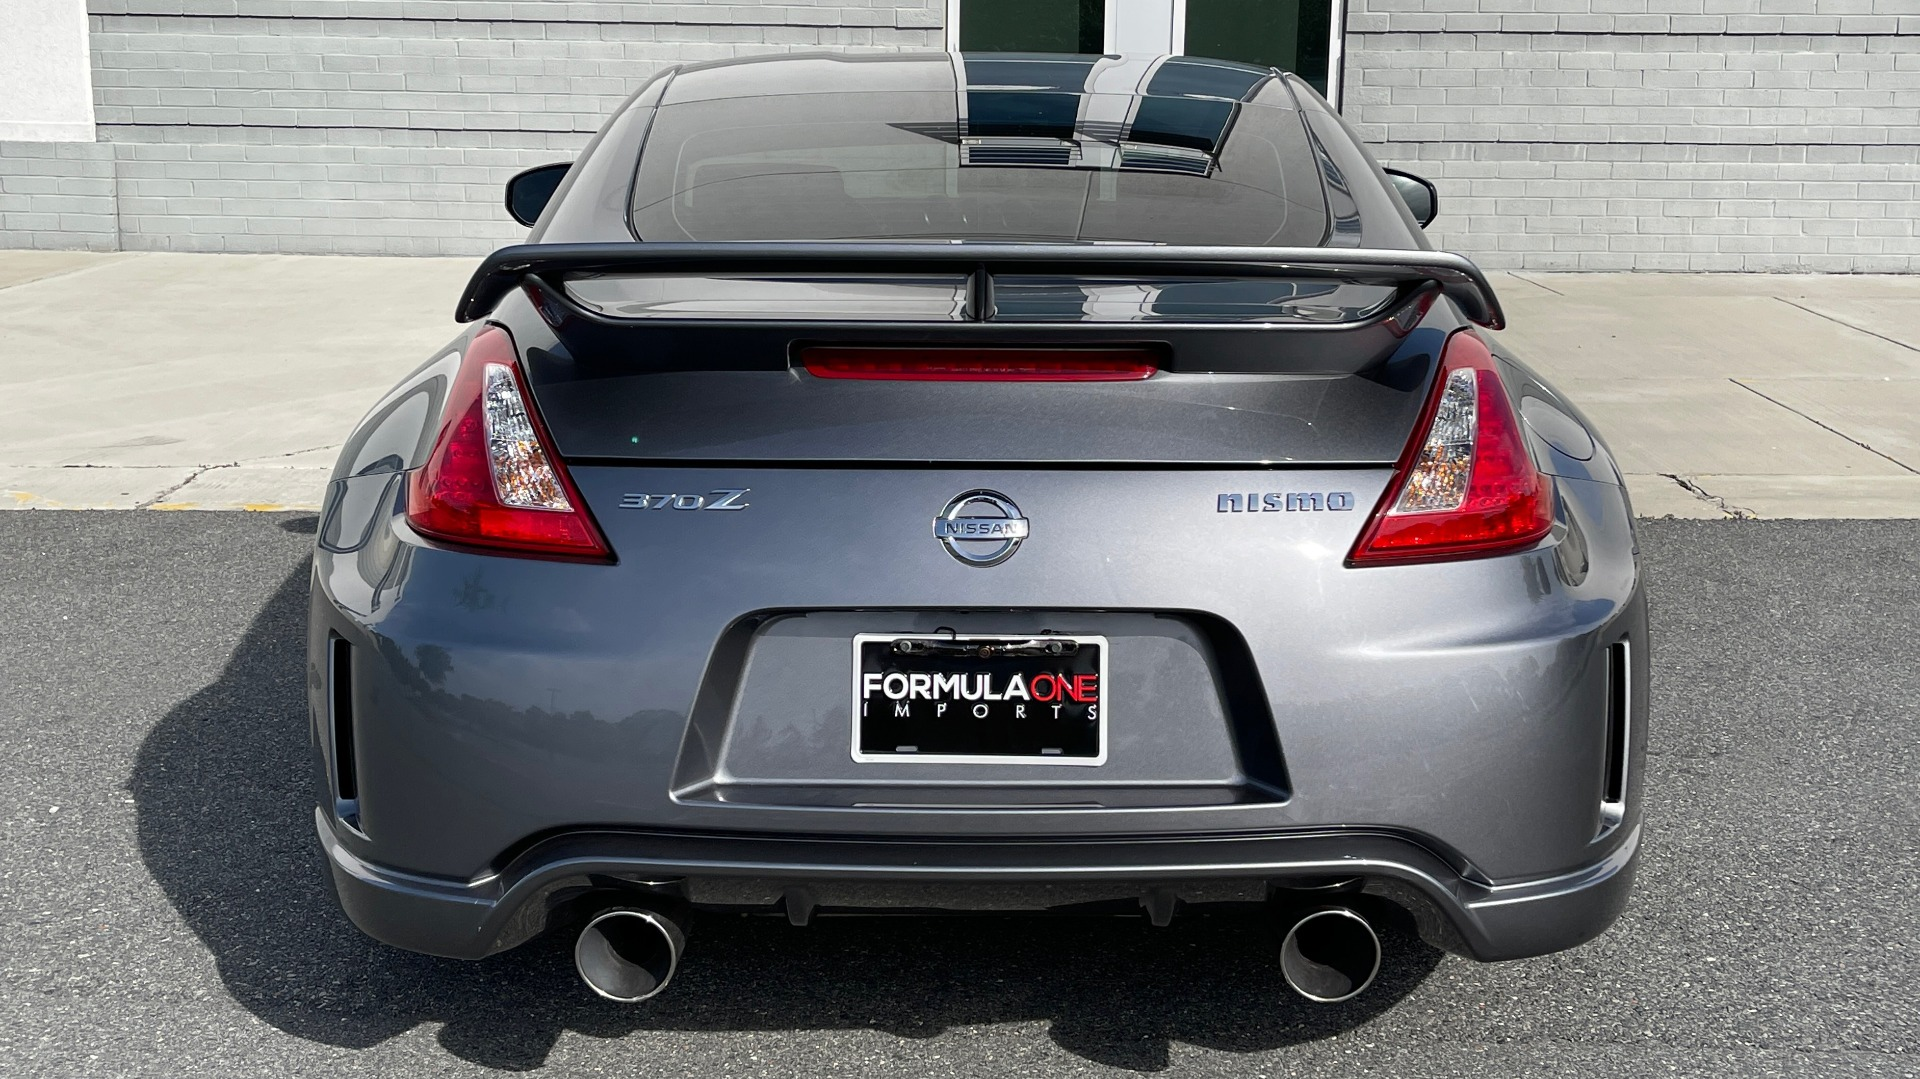 Used 2011 Nissan 370Z NISMO COUPE / 3.7L V6 / 6-SPD MAN / AUTO CLIMATE CONTROL for sale $32,995 at Formula Imports in Charlotte NC 28227 20